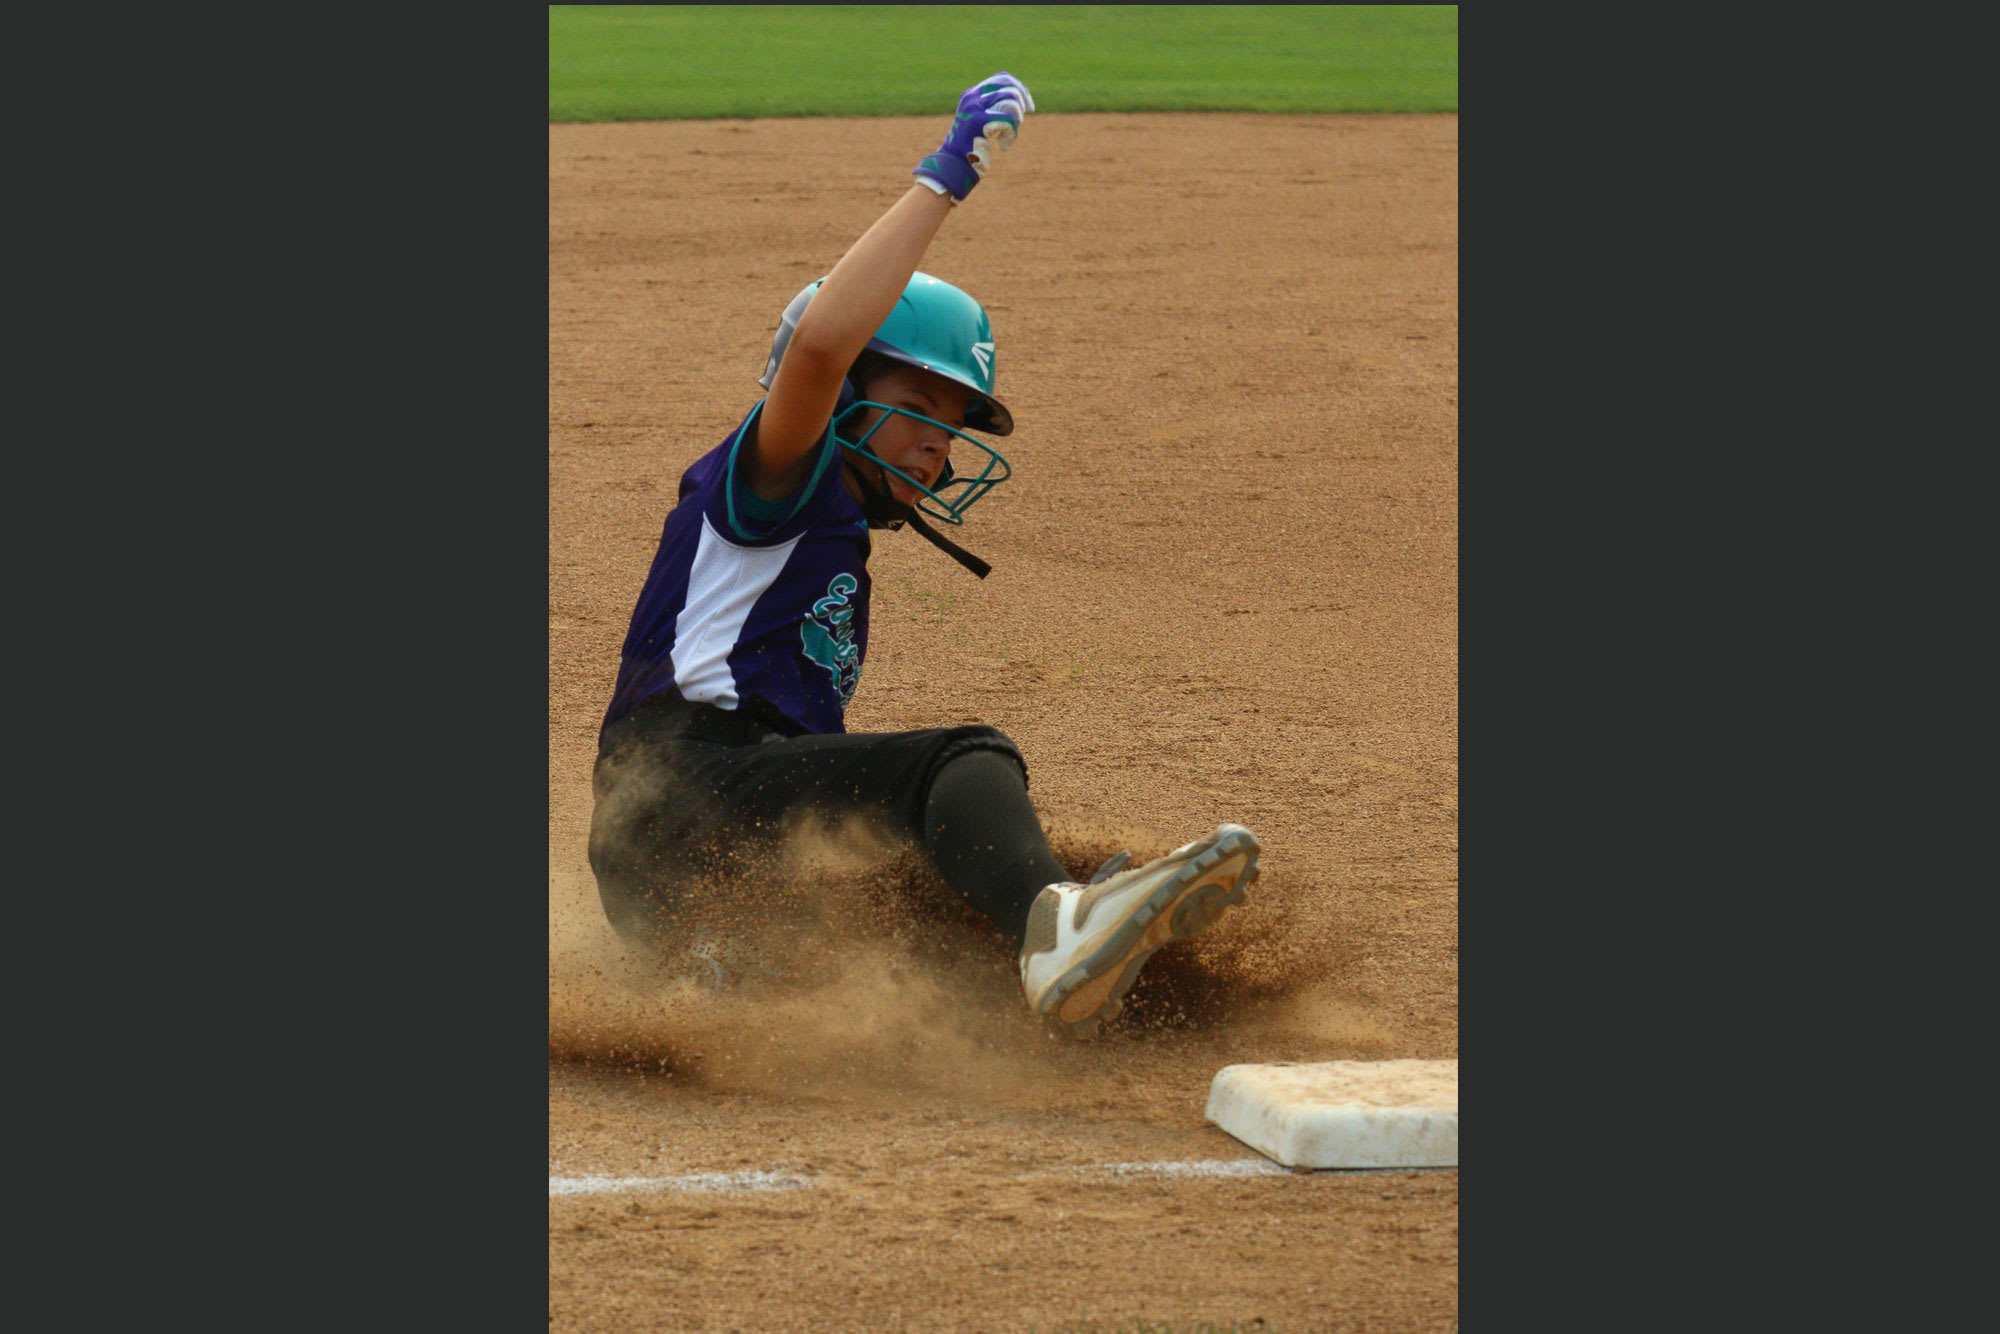 softball player sliding into base